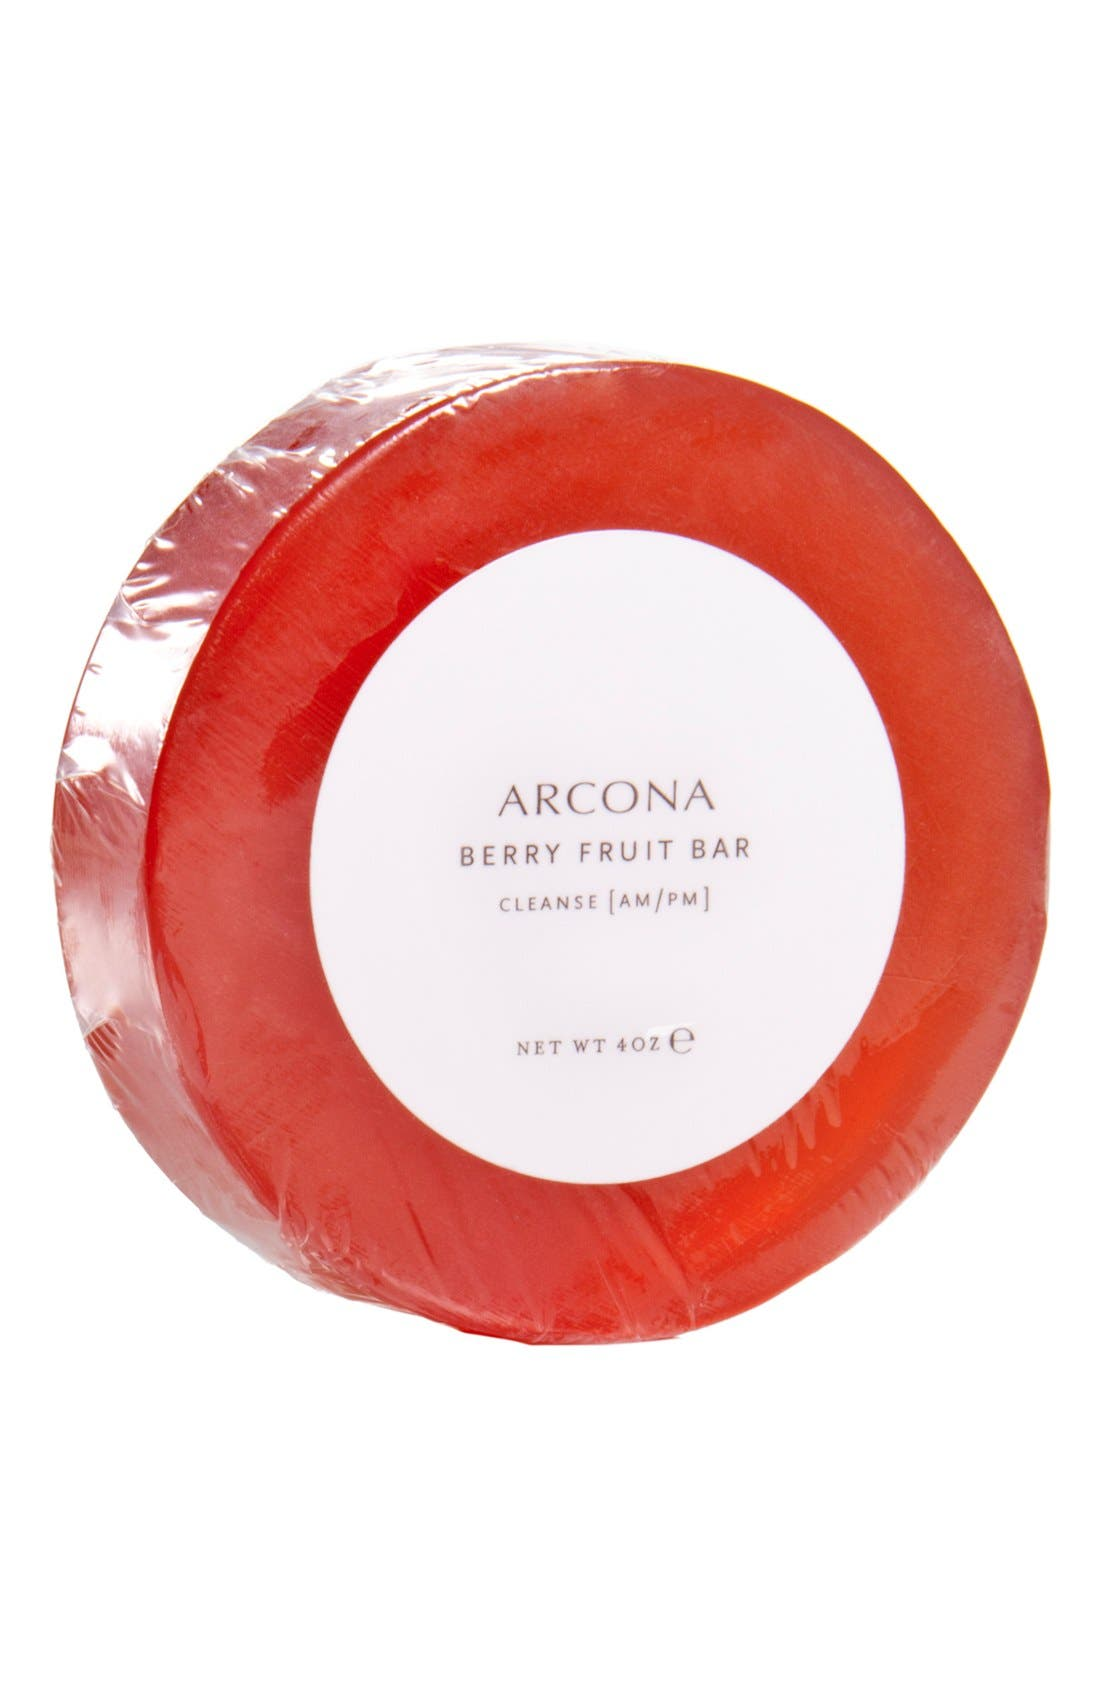 ARCONA Berry Fruit Cleanser Bar Refill